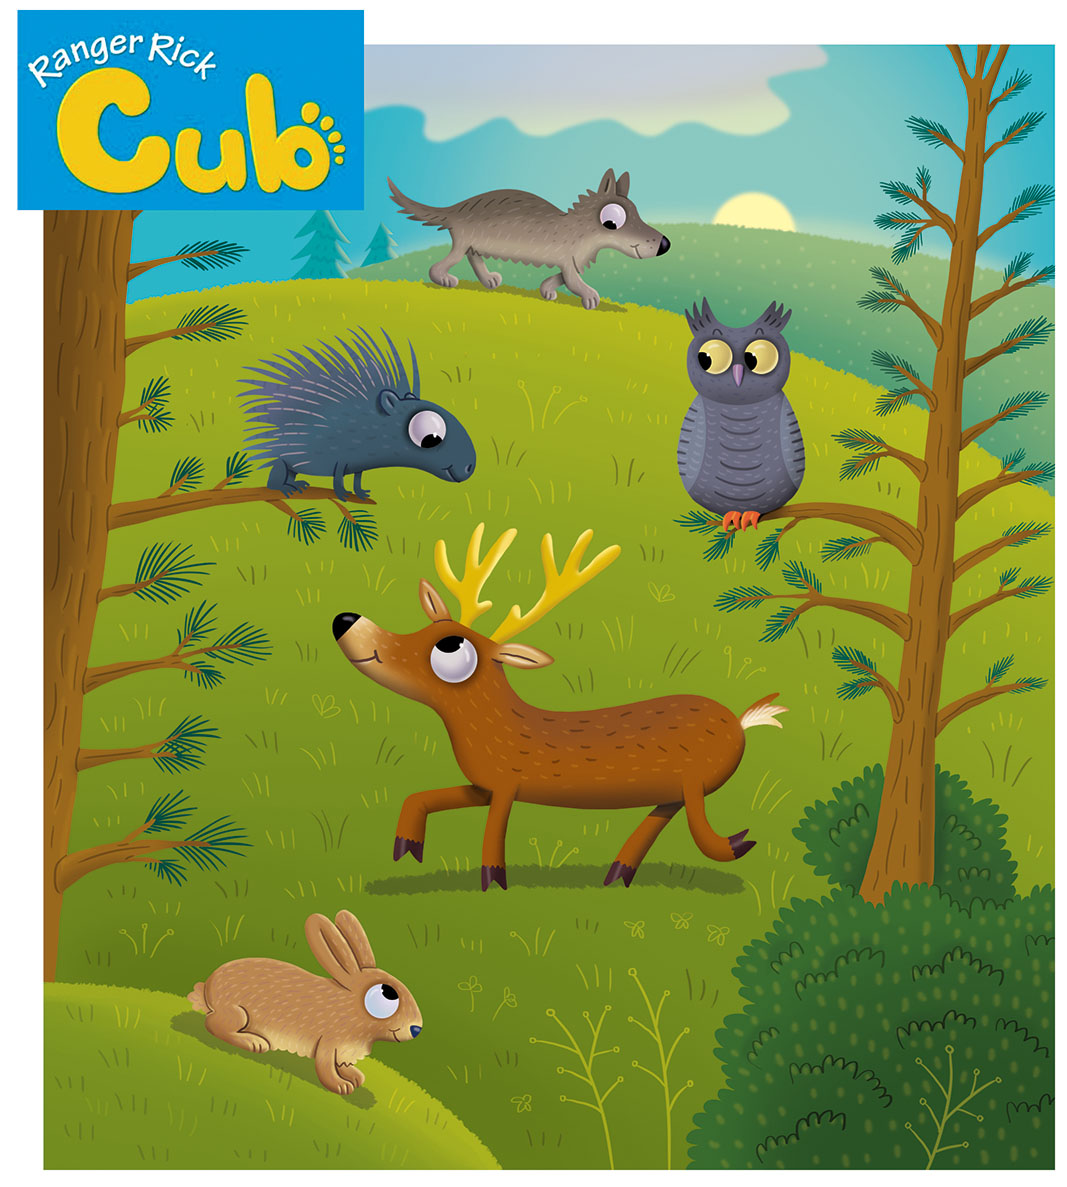 Ranger Rick Cub Magazine  recently selected me as a regular contributing illustrator. My work will appear six times throughout 2018-2019.